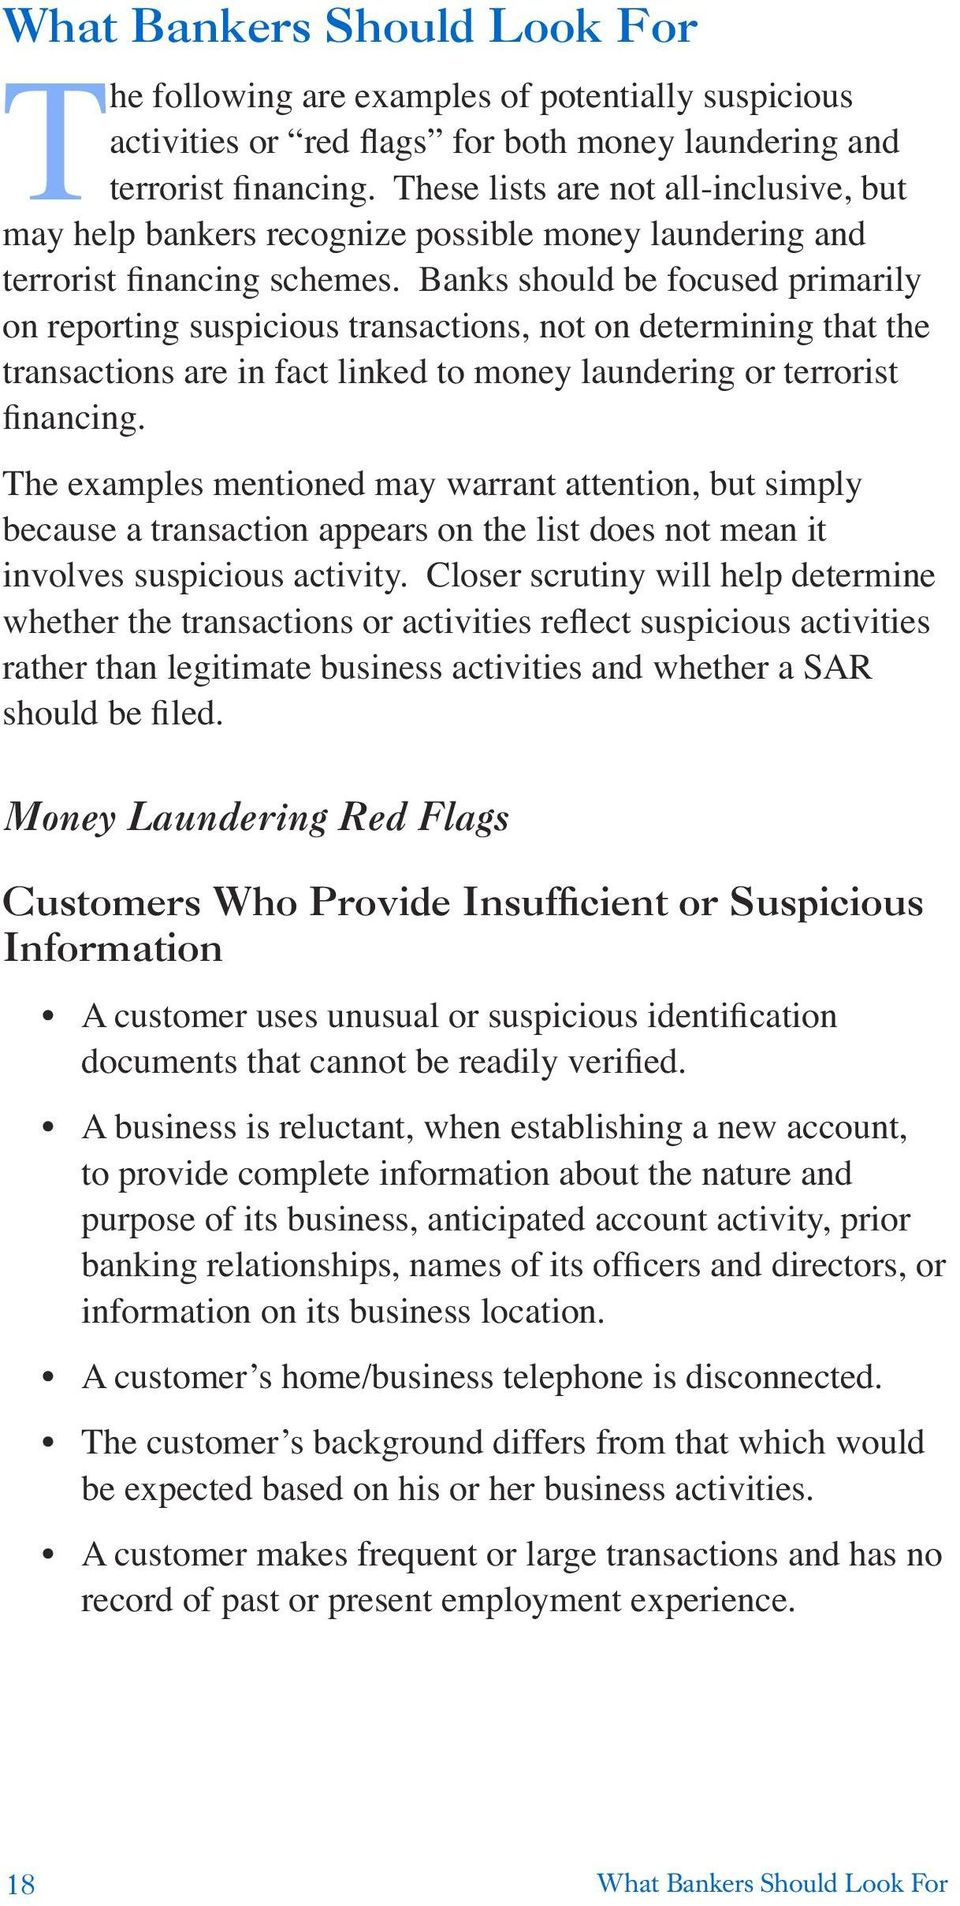 Banks should be focused primarily on reporting suspicious transactions, not on determining that the transactions are in fact linked to money laundering or terrorist financing.